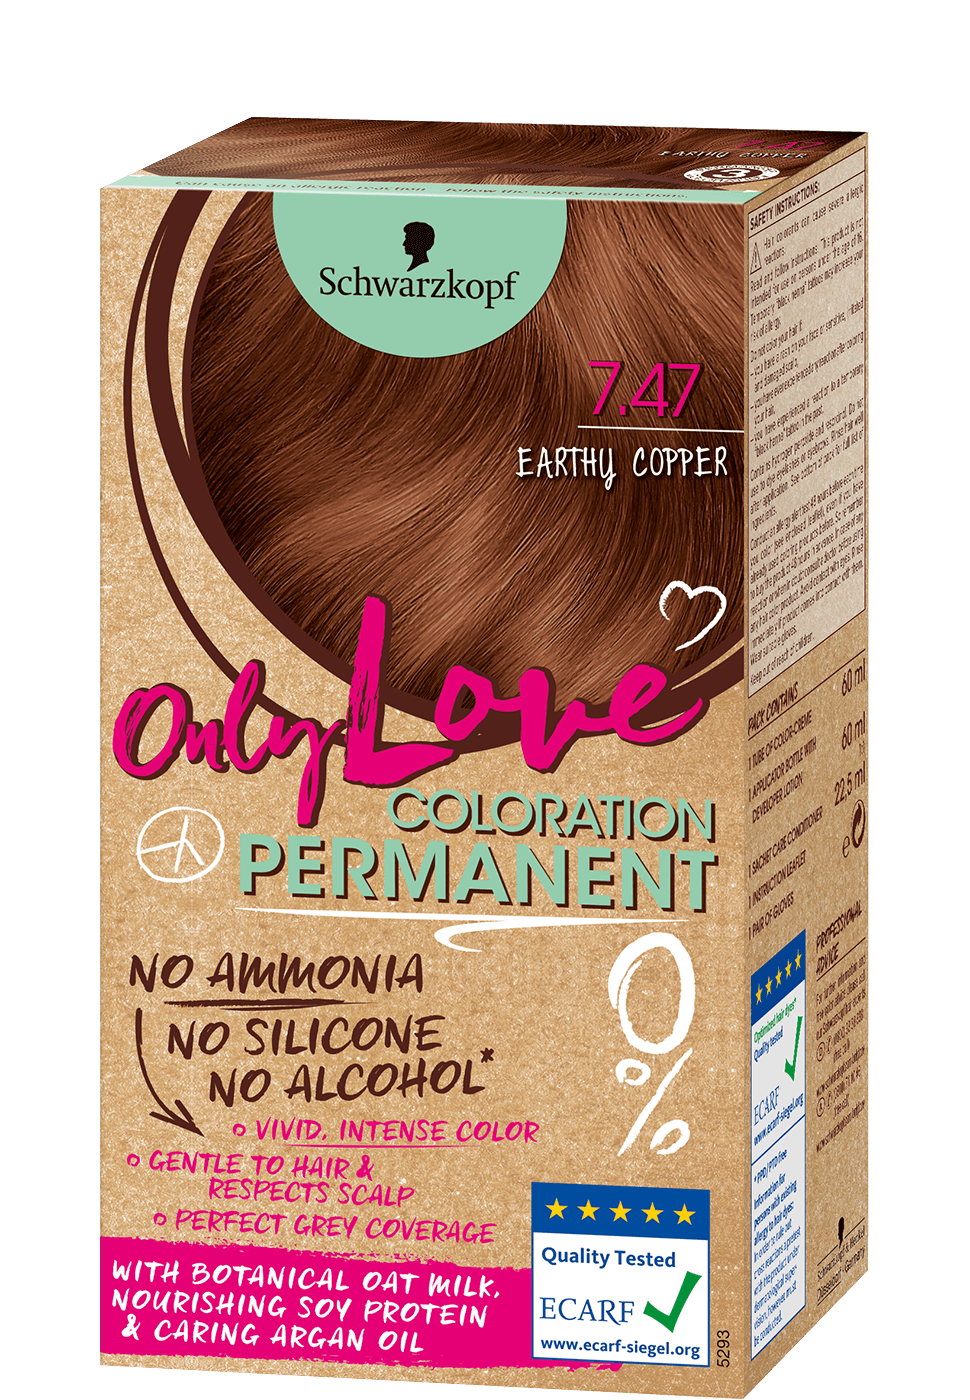 only_love_com_coloration_permanent_7_47_earthy_copper_970x1400